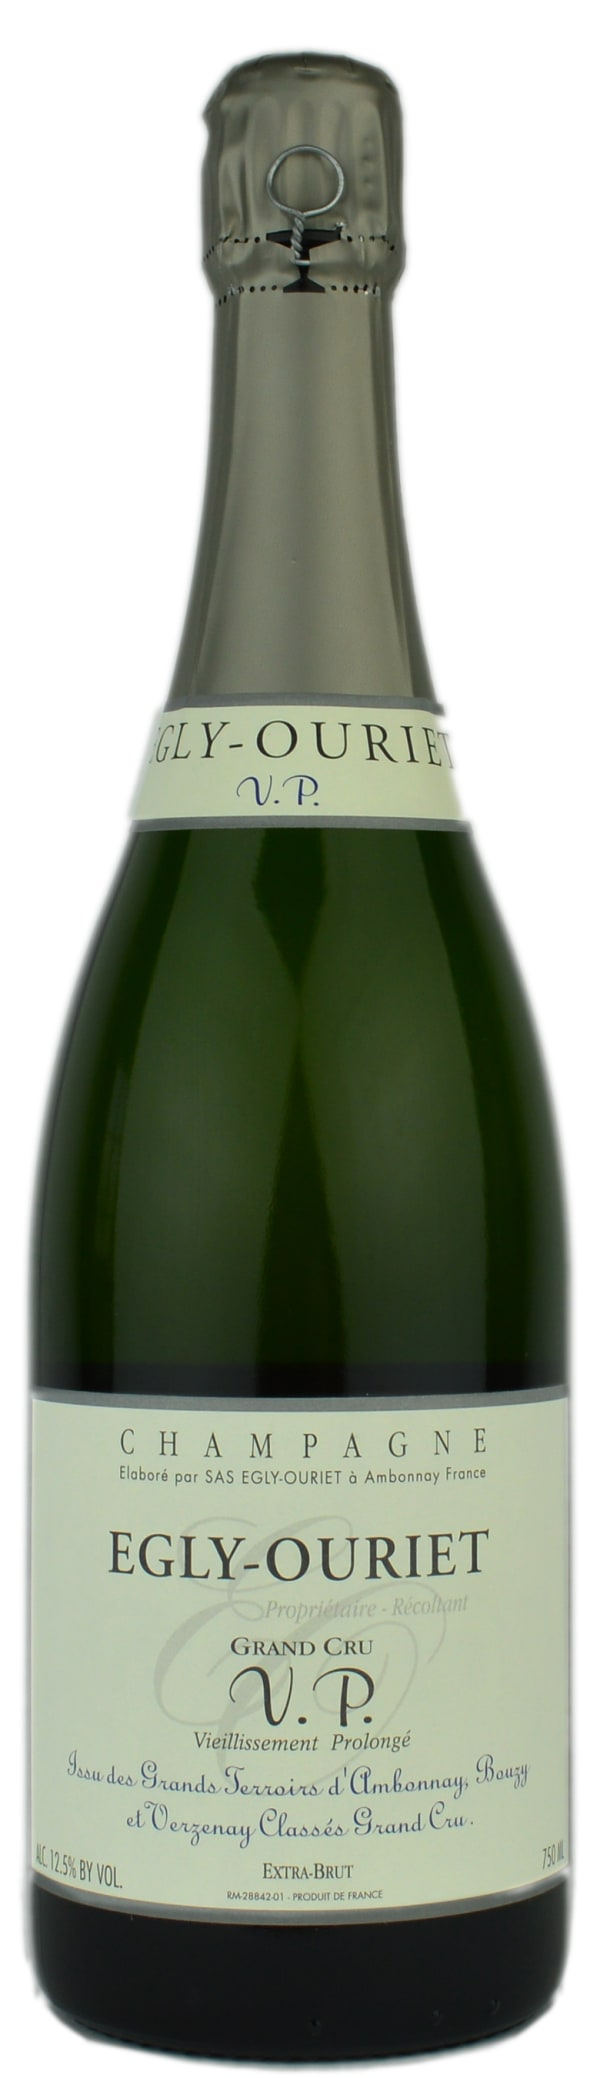 Egly-Ouriet V.P. Grand Cru Champagne Extra-Brut